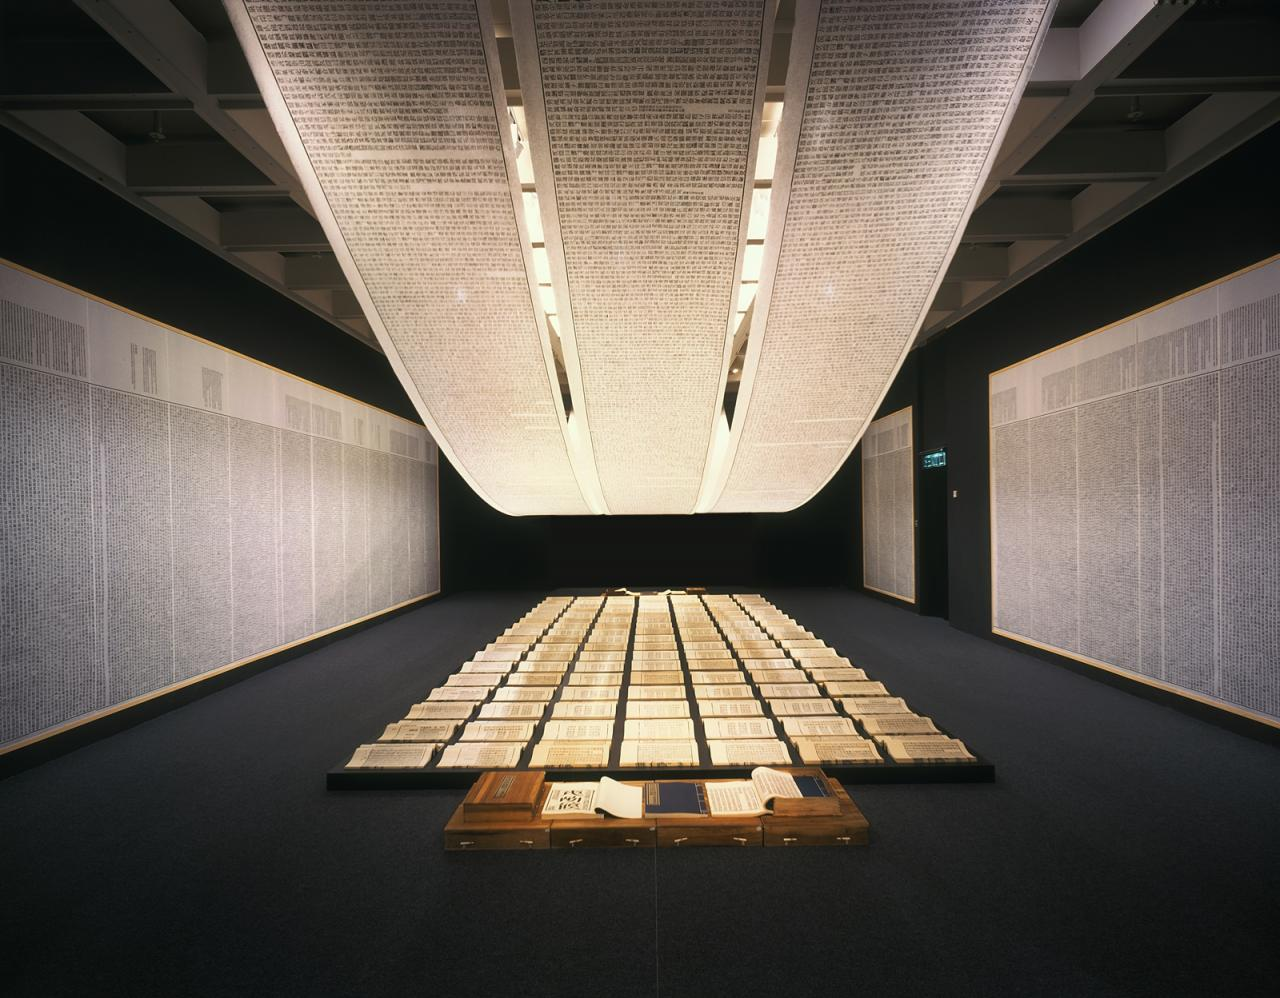 Xu Bing,A book from the sky image